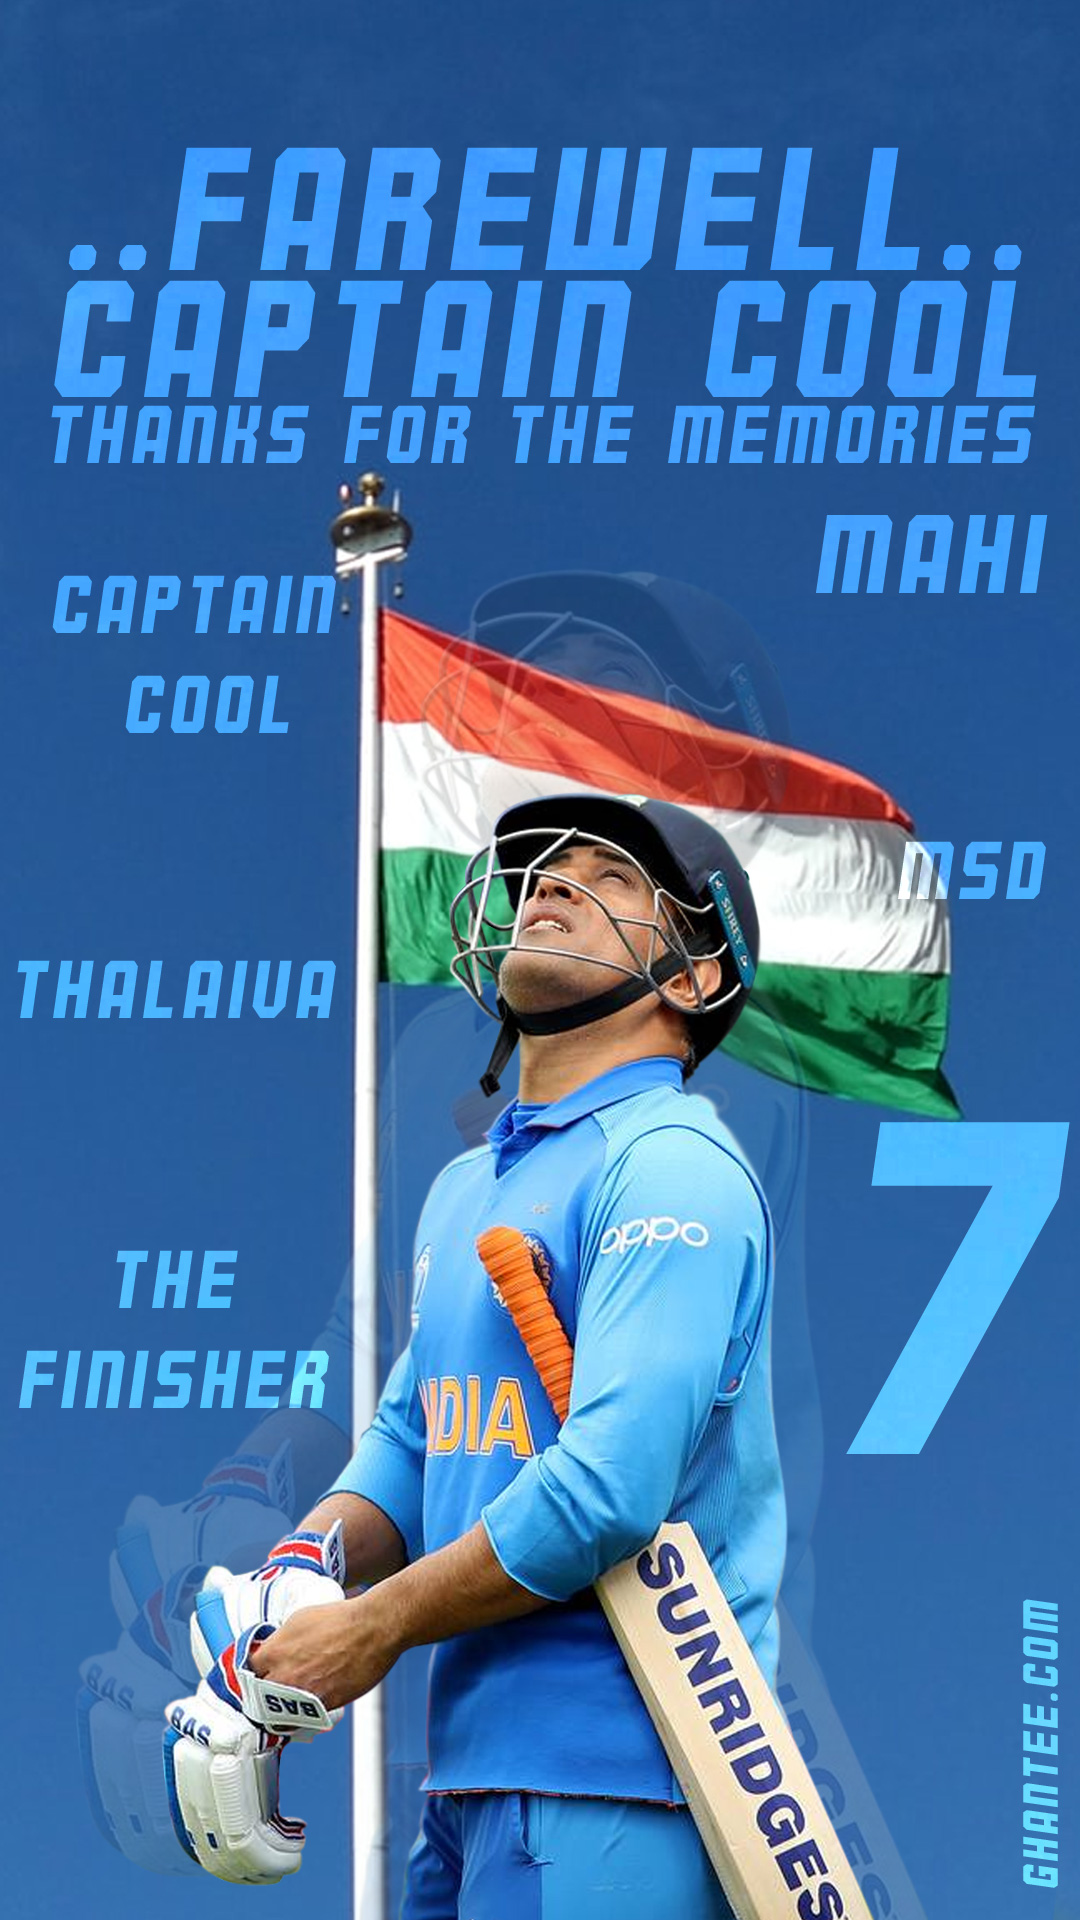 m s dhoni retirement hd phone wallpaper